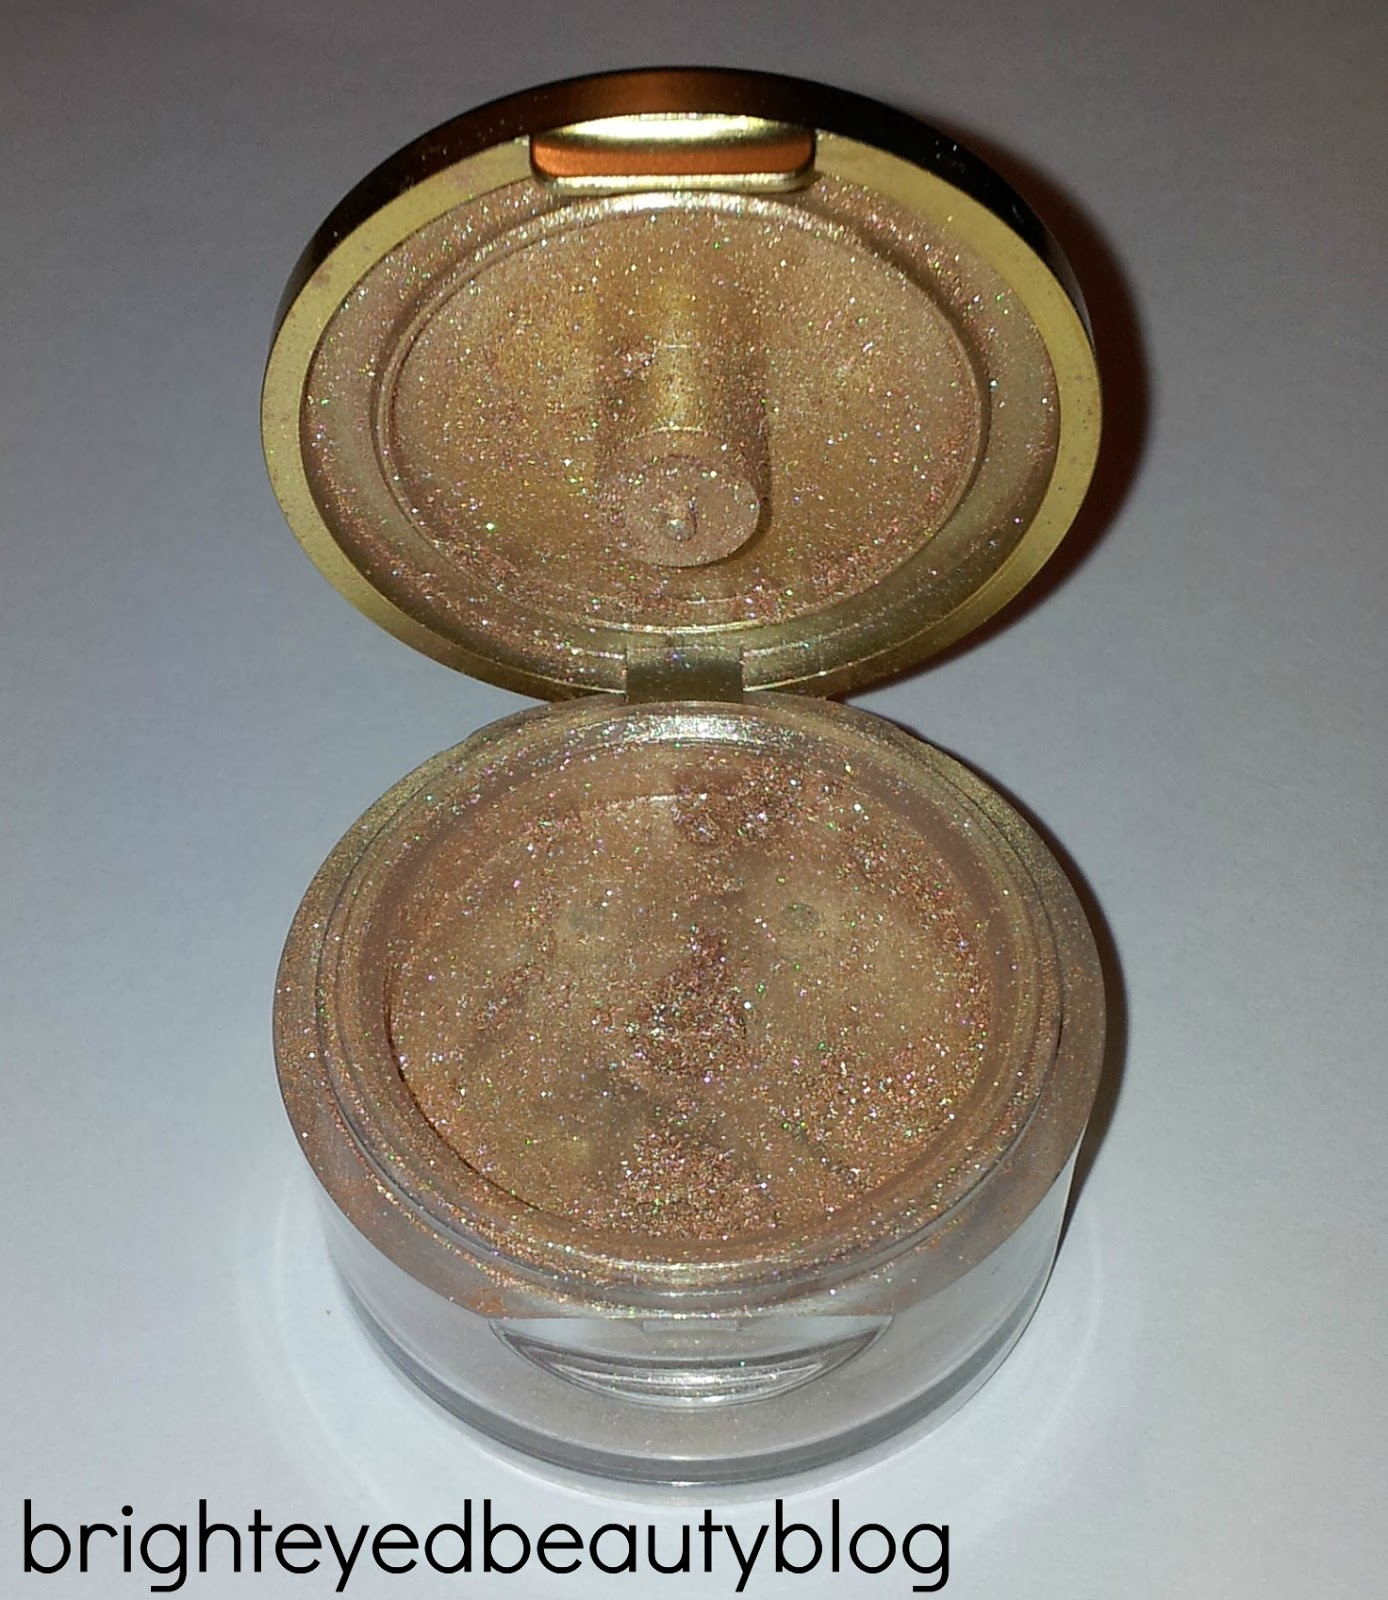 Napoleon Perdis Loose Eye Dust in Star Light